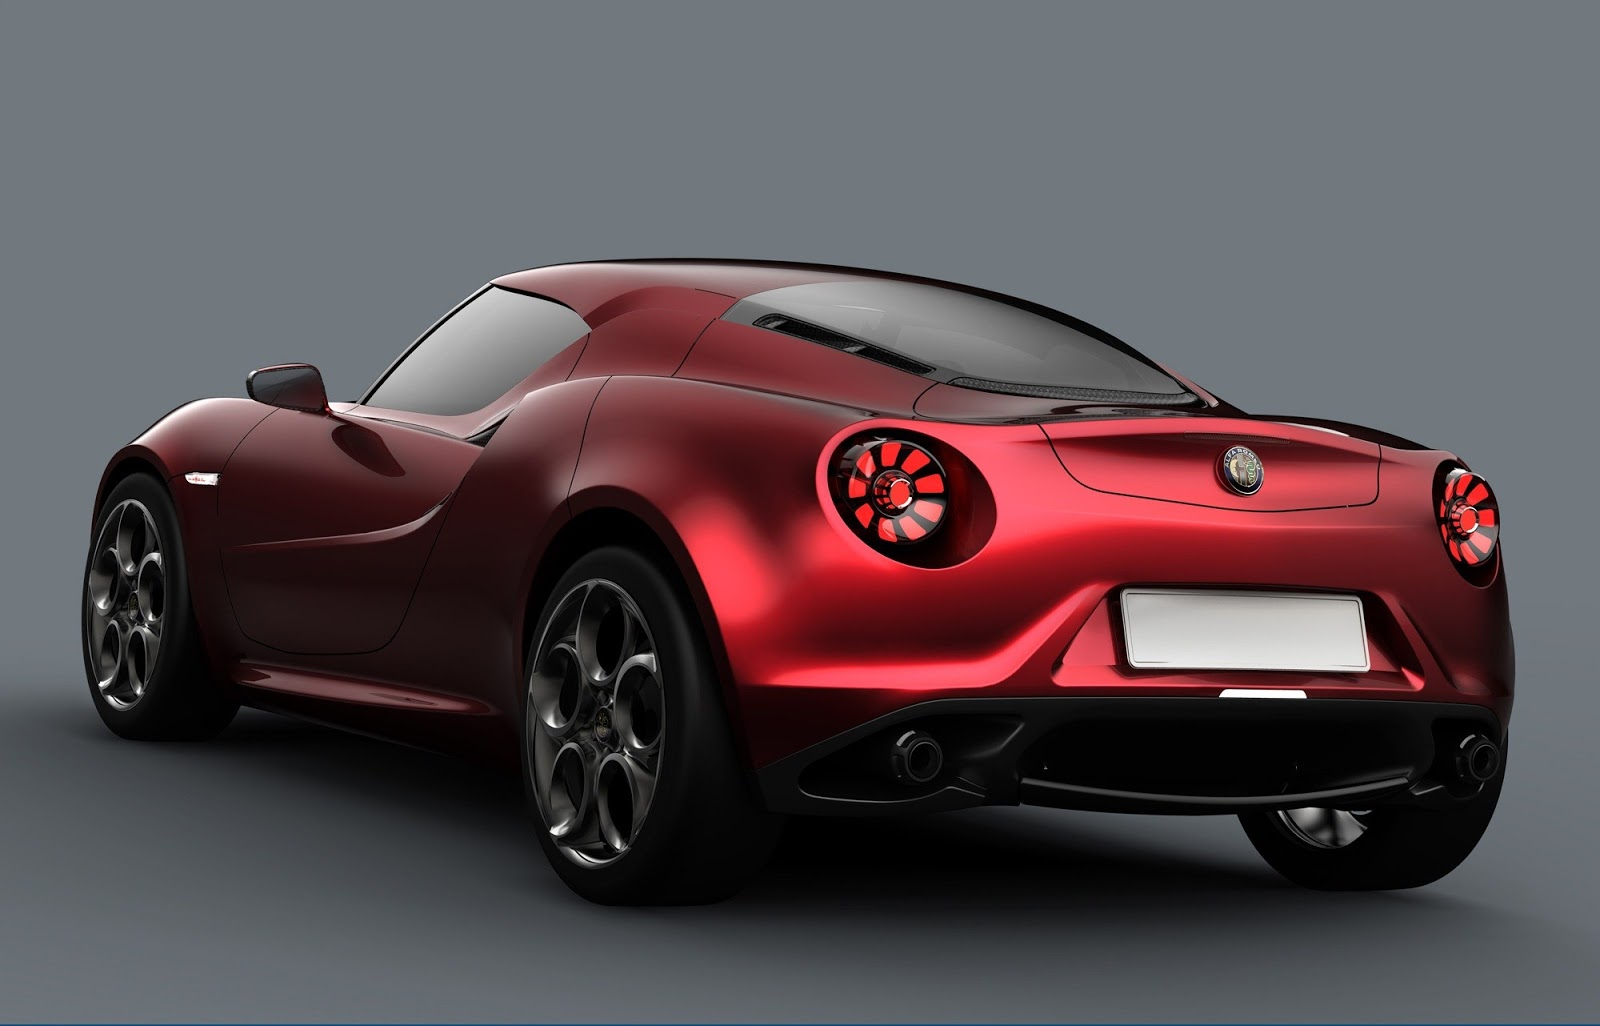 2014 alfa romeo 4c car prices prices worldwide for cars bikes laptops etc. Black Bedroom Furniture Sets. Home Design Ideas